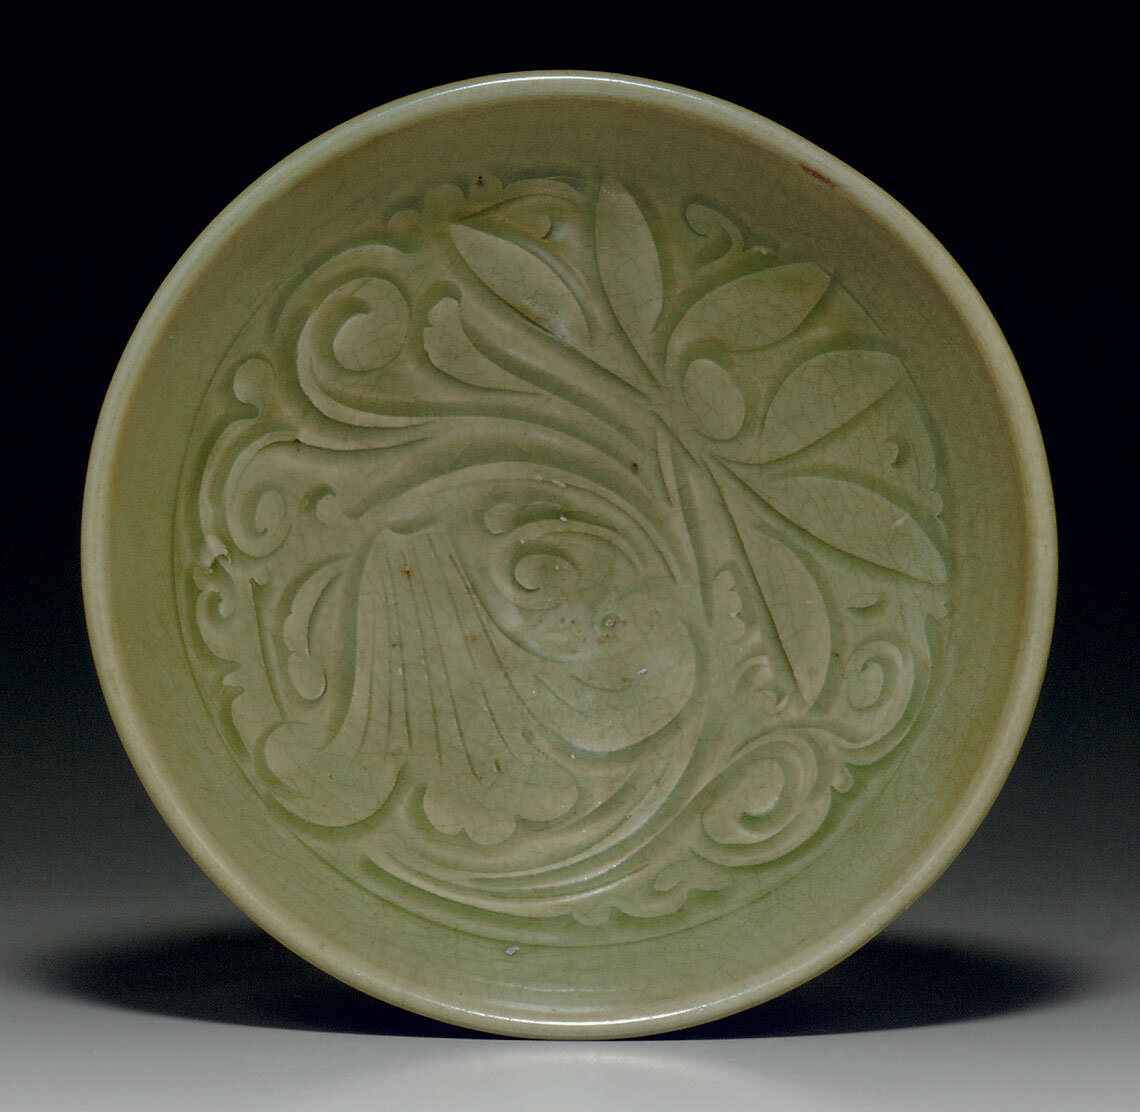 A Yaozhou celadon carved bowl, Northern Song dynasty, 11th-12th century